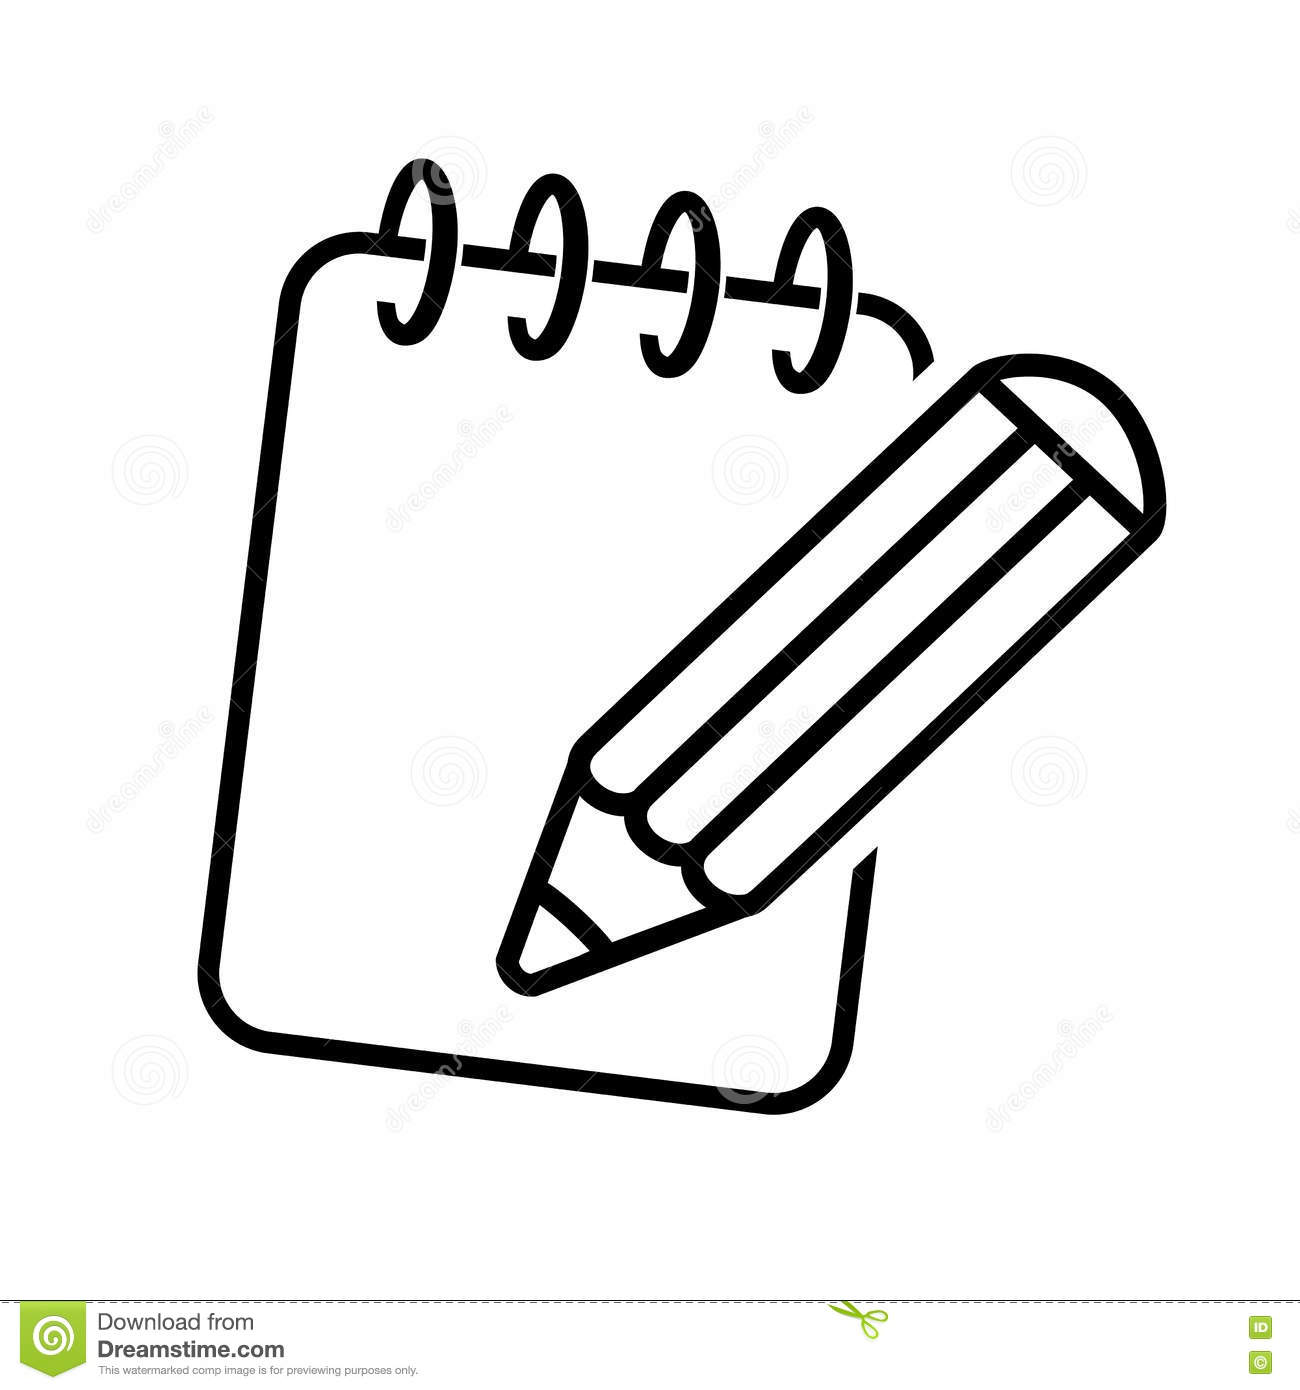 Underline additionally Stock Illustration Black Symbol Notepad Icon Pencil Writing Pad Line Design Illustration Image78257465 further Karate Kyokushinkai Martial Arts Sports 7747743 besides Illustrazione Di Stock Lo Zentangle Del Canguro Ha Stilizzato Vector Illustrazione Penc Mano Libera Image66257514 likewise Royalty Free Stock Photos Ink Brush Strokes Image2877528. on pencil vector graphic